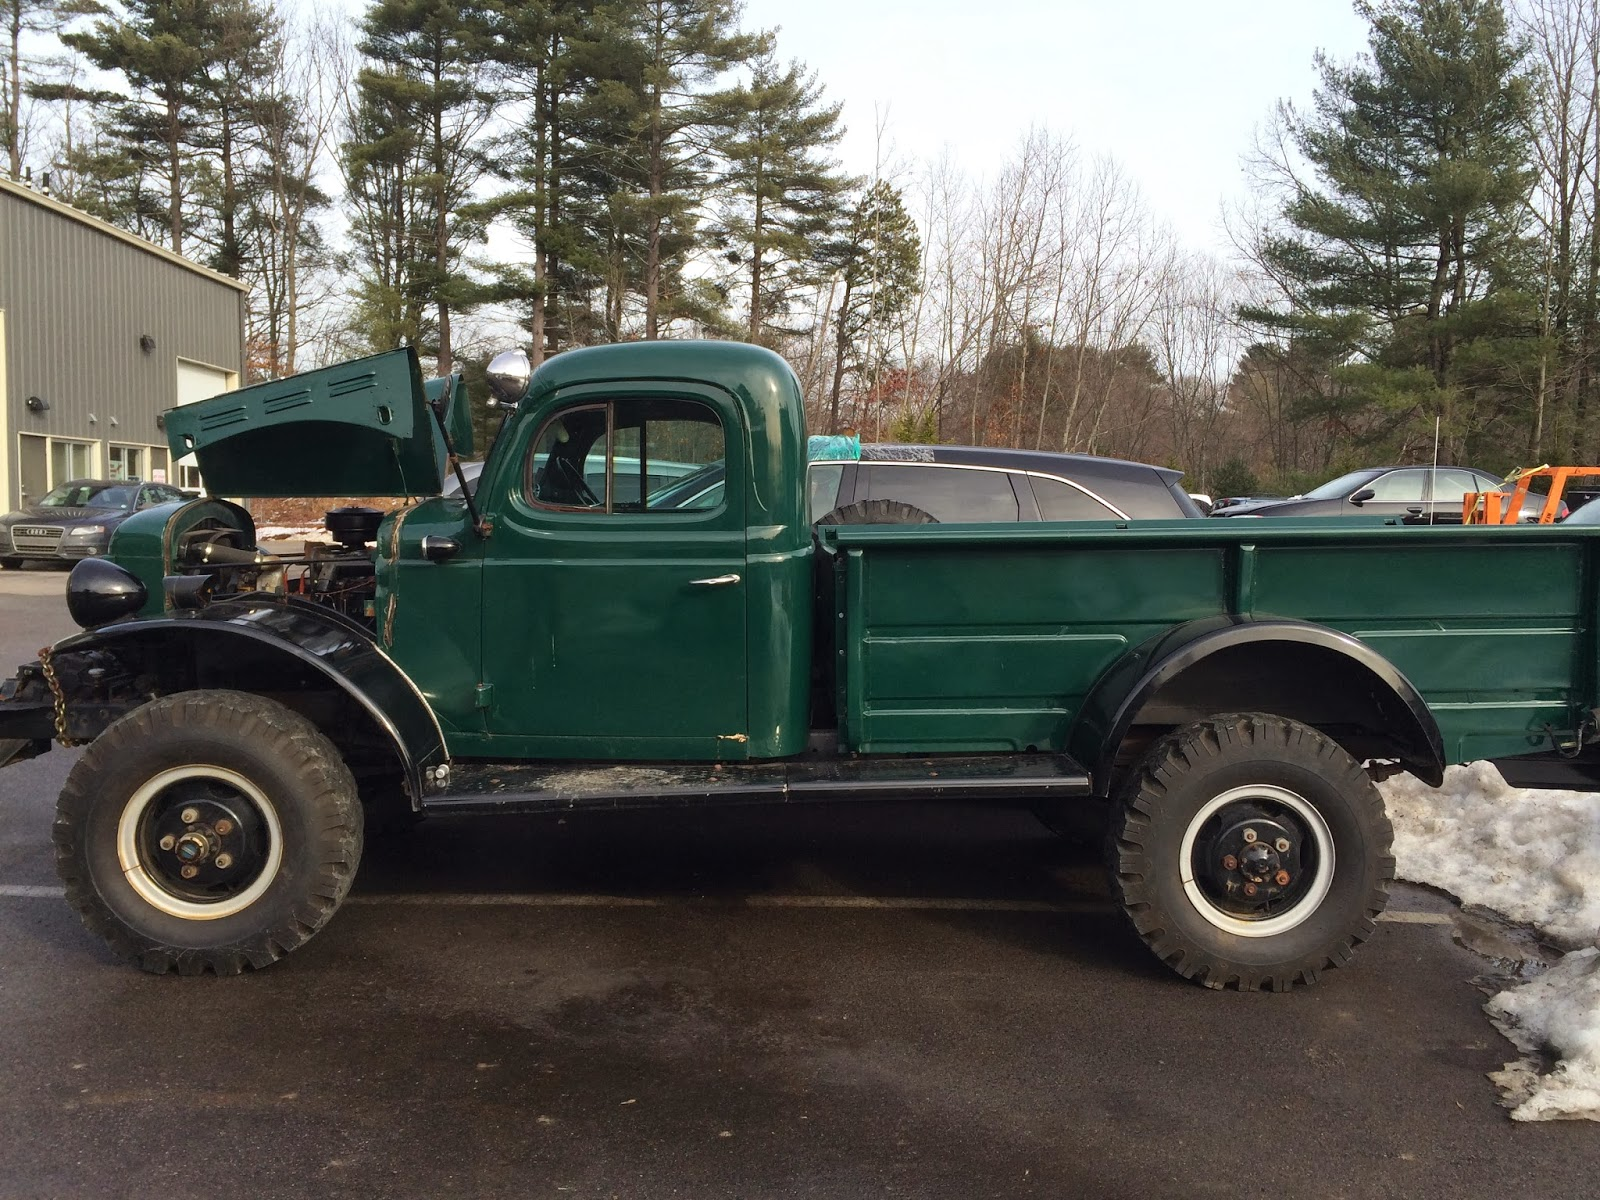 Index php furthermore 1943 Dodge Power Wagon For Sale In Halton Hills Ontario L7g 4s6 in addition 1945 Dodge Hot Rod Pickup Truck Custom Turbo Five Speed Suicide Doors also 1929 Buick Model 47 Sedan further 1940s Dodge Power Wagon For Sale. on dodge war wagon